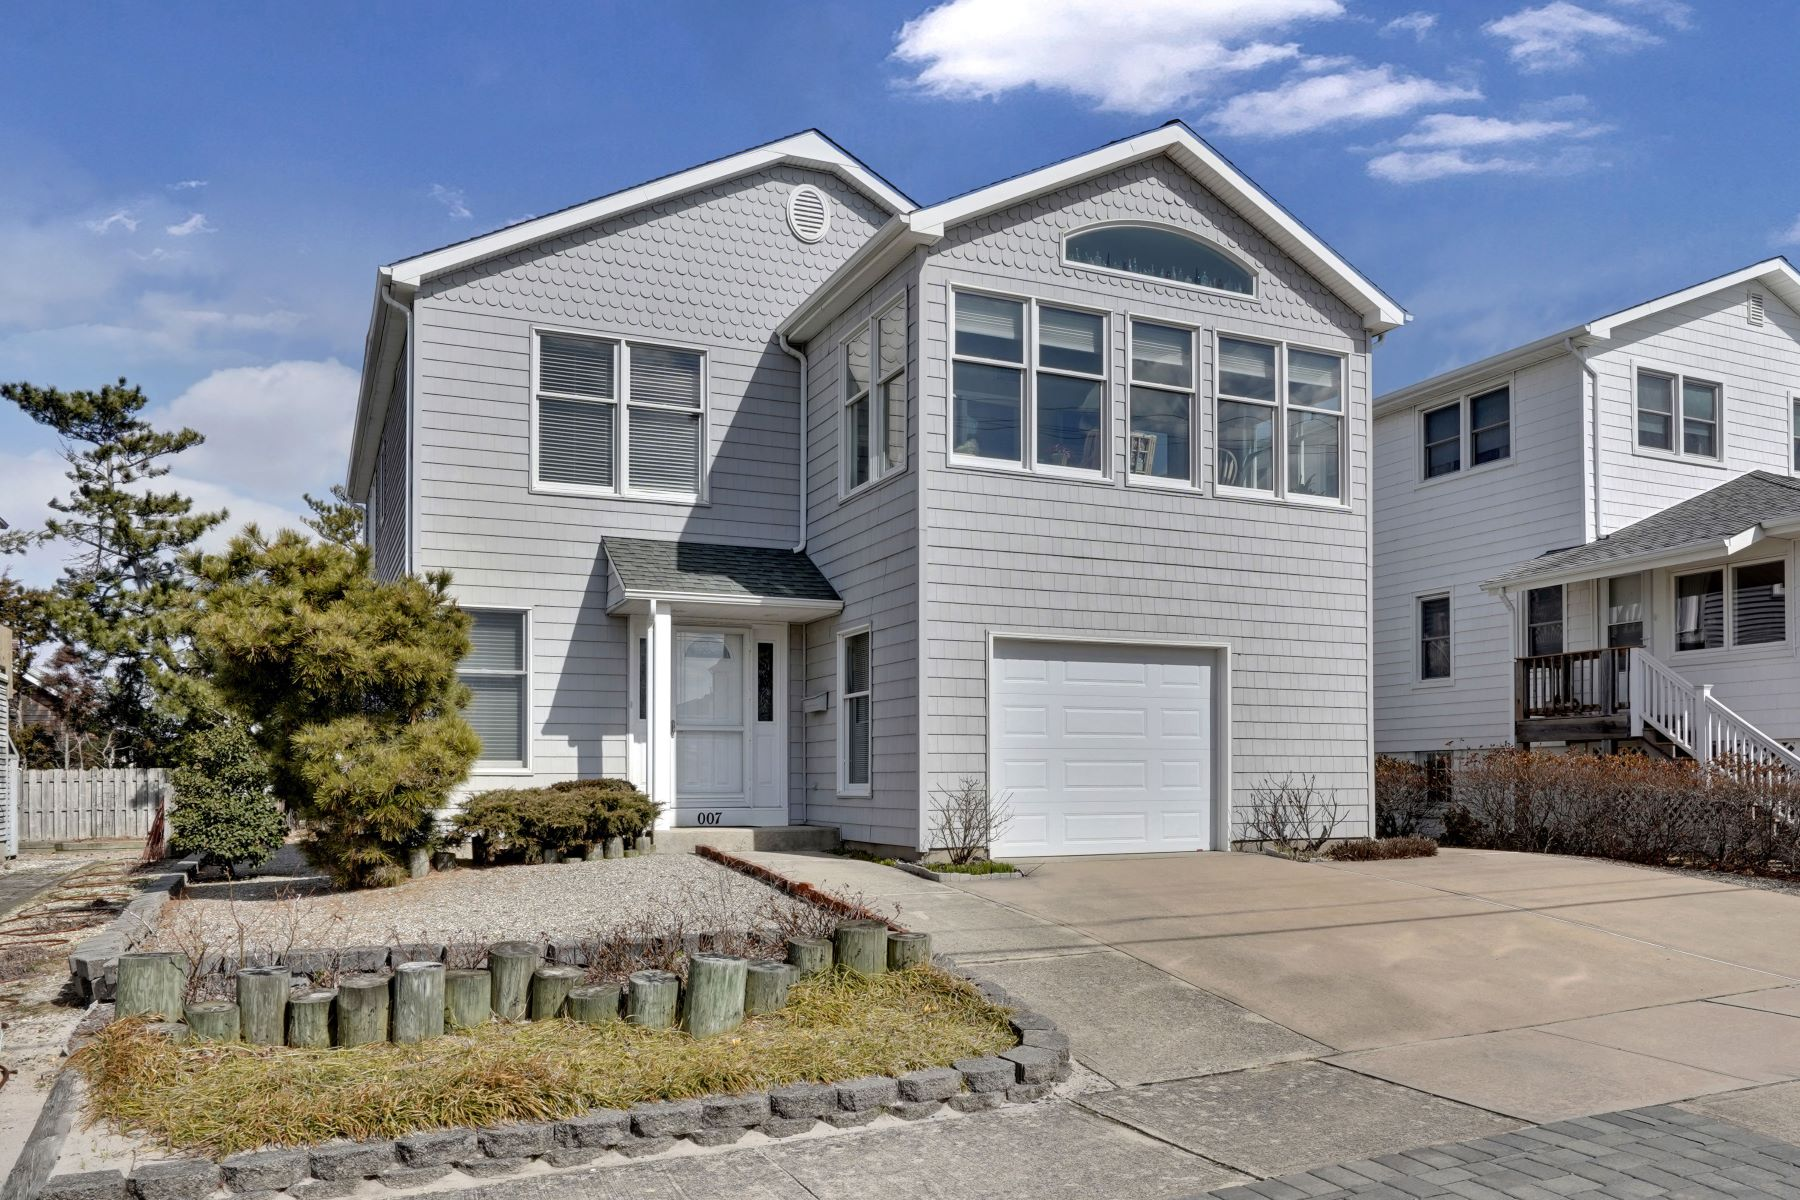 single family homes vì Bán tại Great Beach Block Home With Direct Beach Access In Northern End Of Town 7 Bond Avenue, Lavallette, New Jersey 08735 Hoa Kỳ